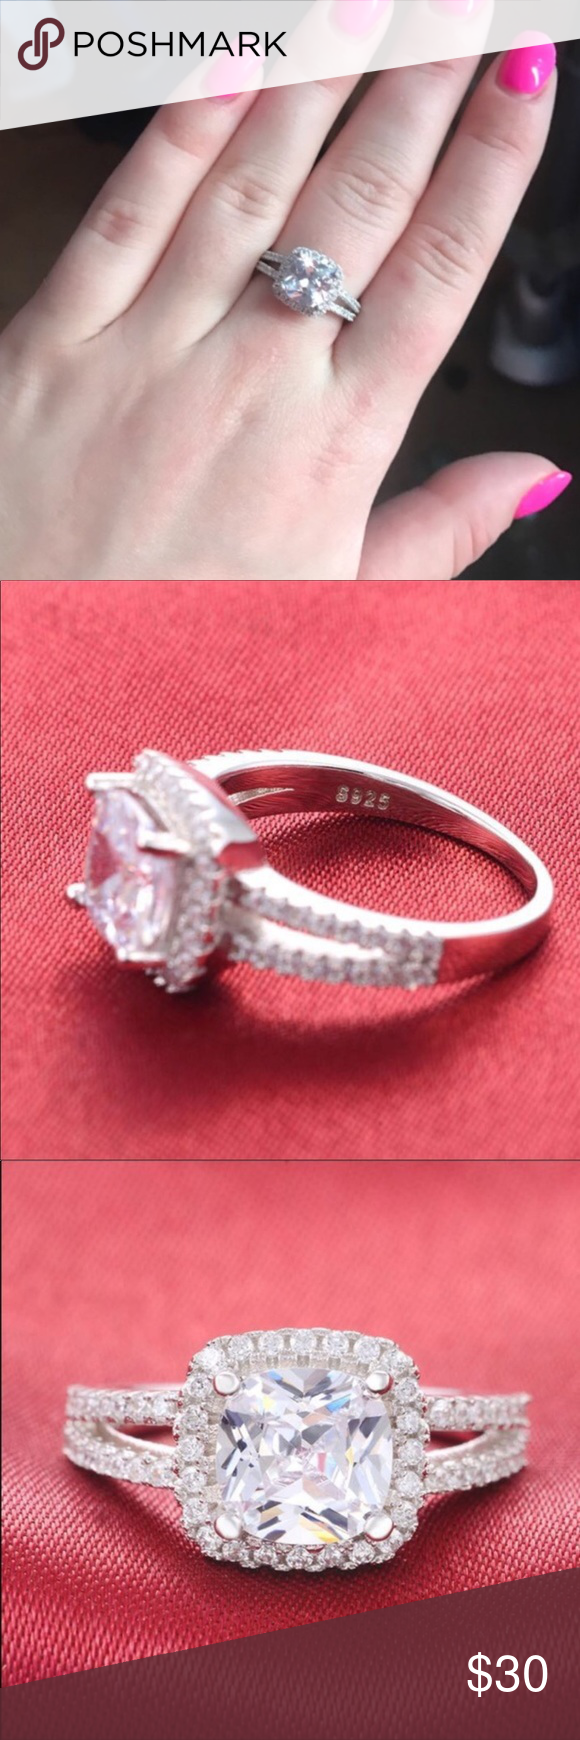 Size 5) real silver 4CT engagement ring | Wedding jewelry ...